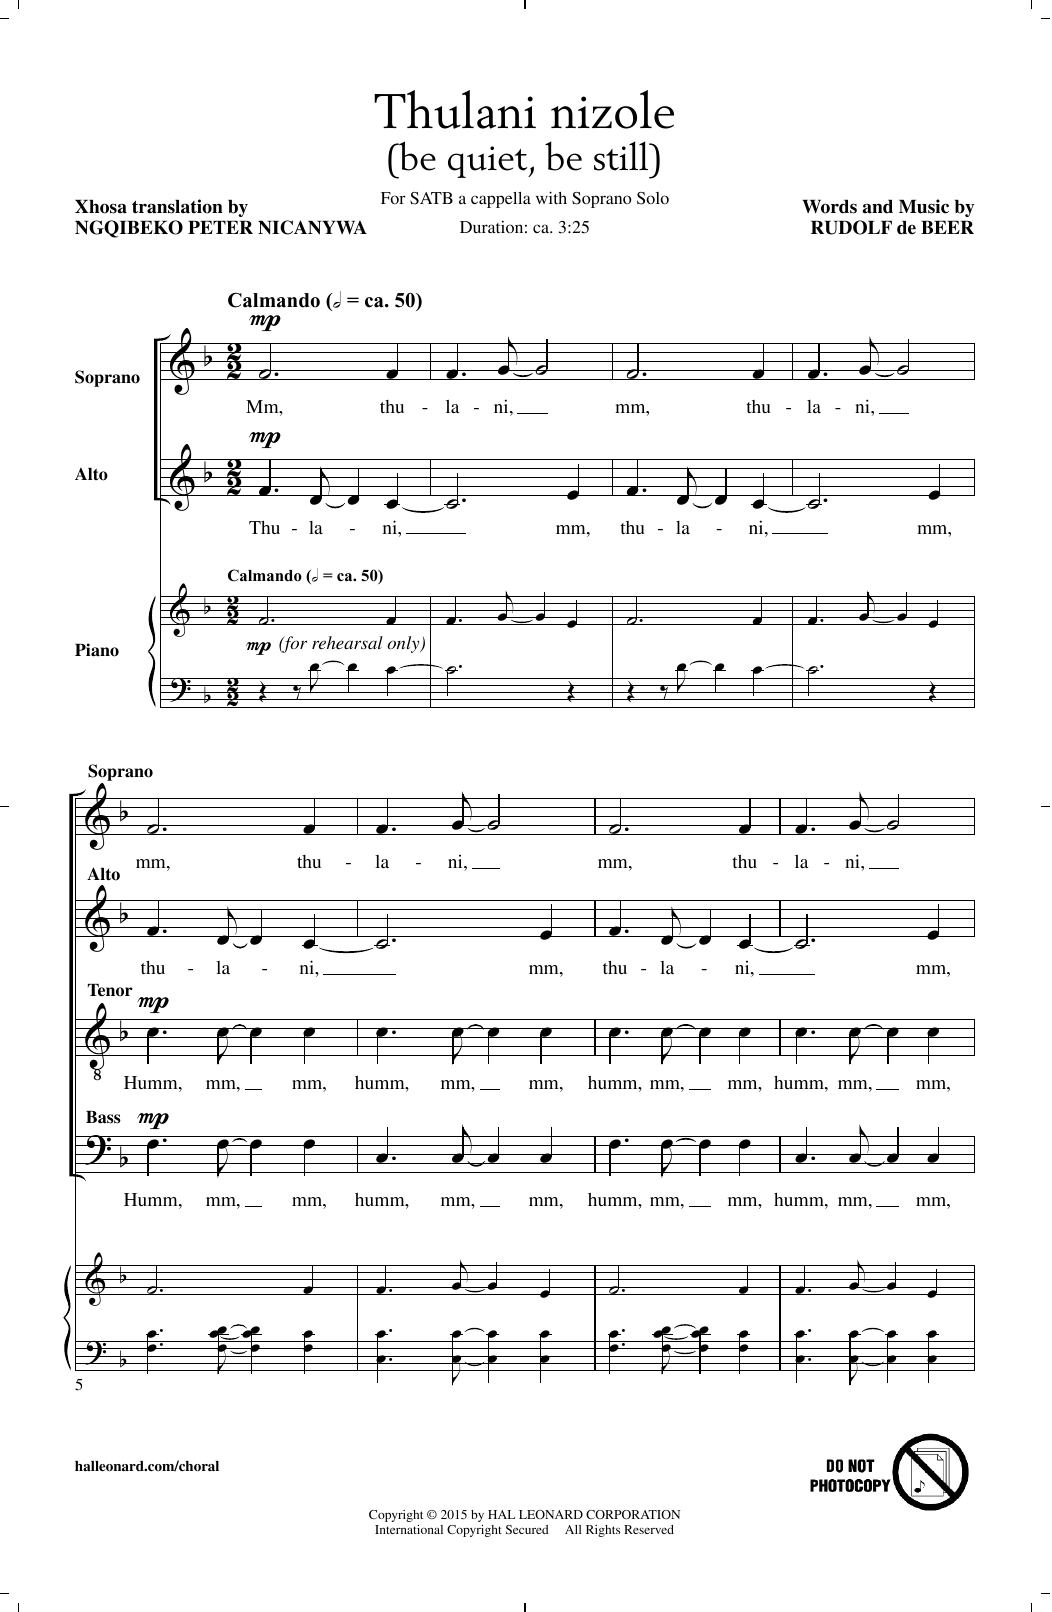 Thulani Nizole Sheet Music